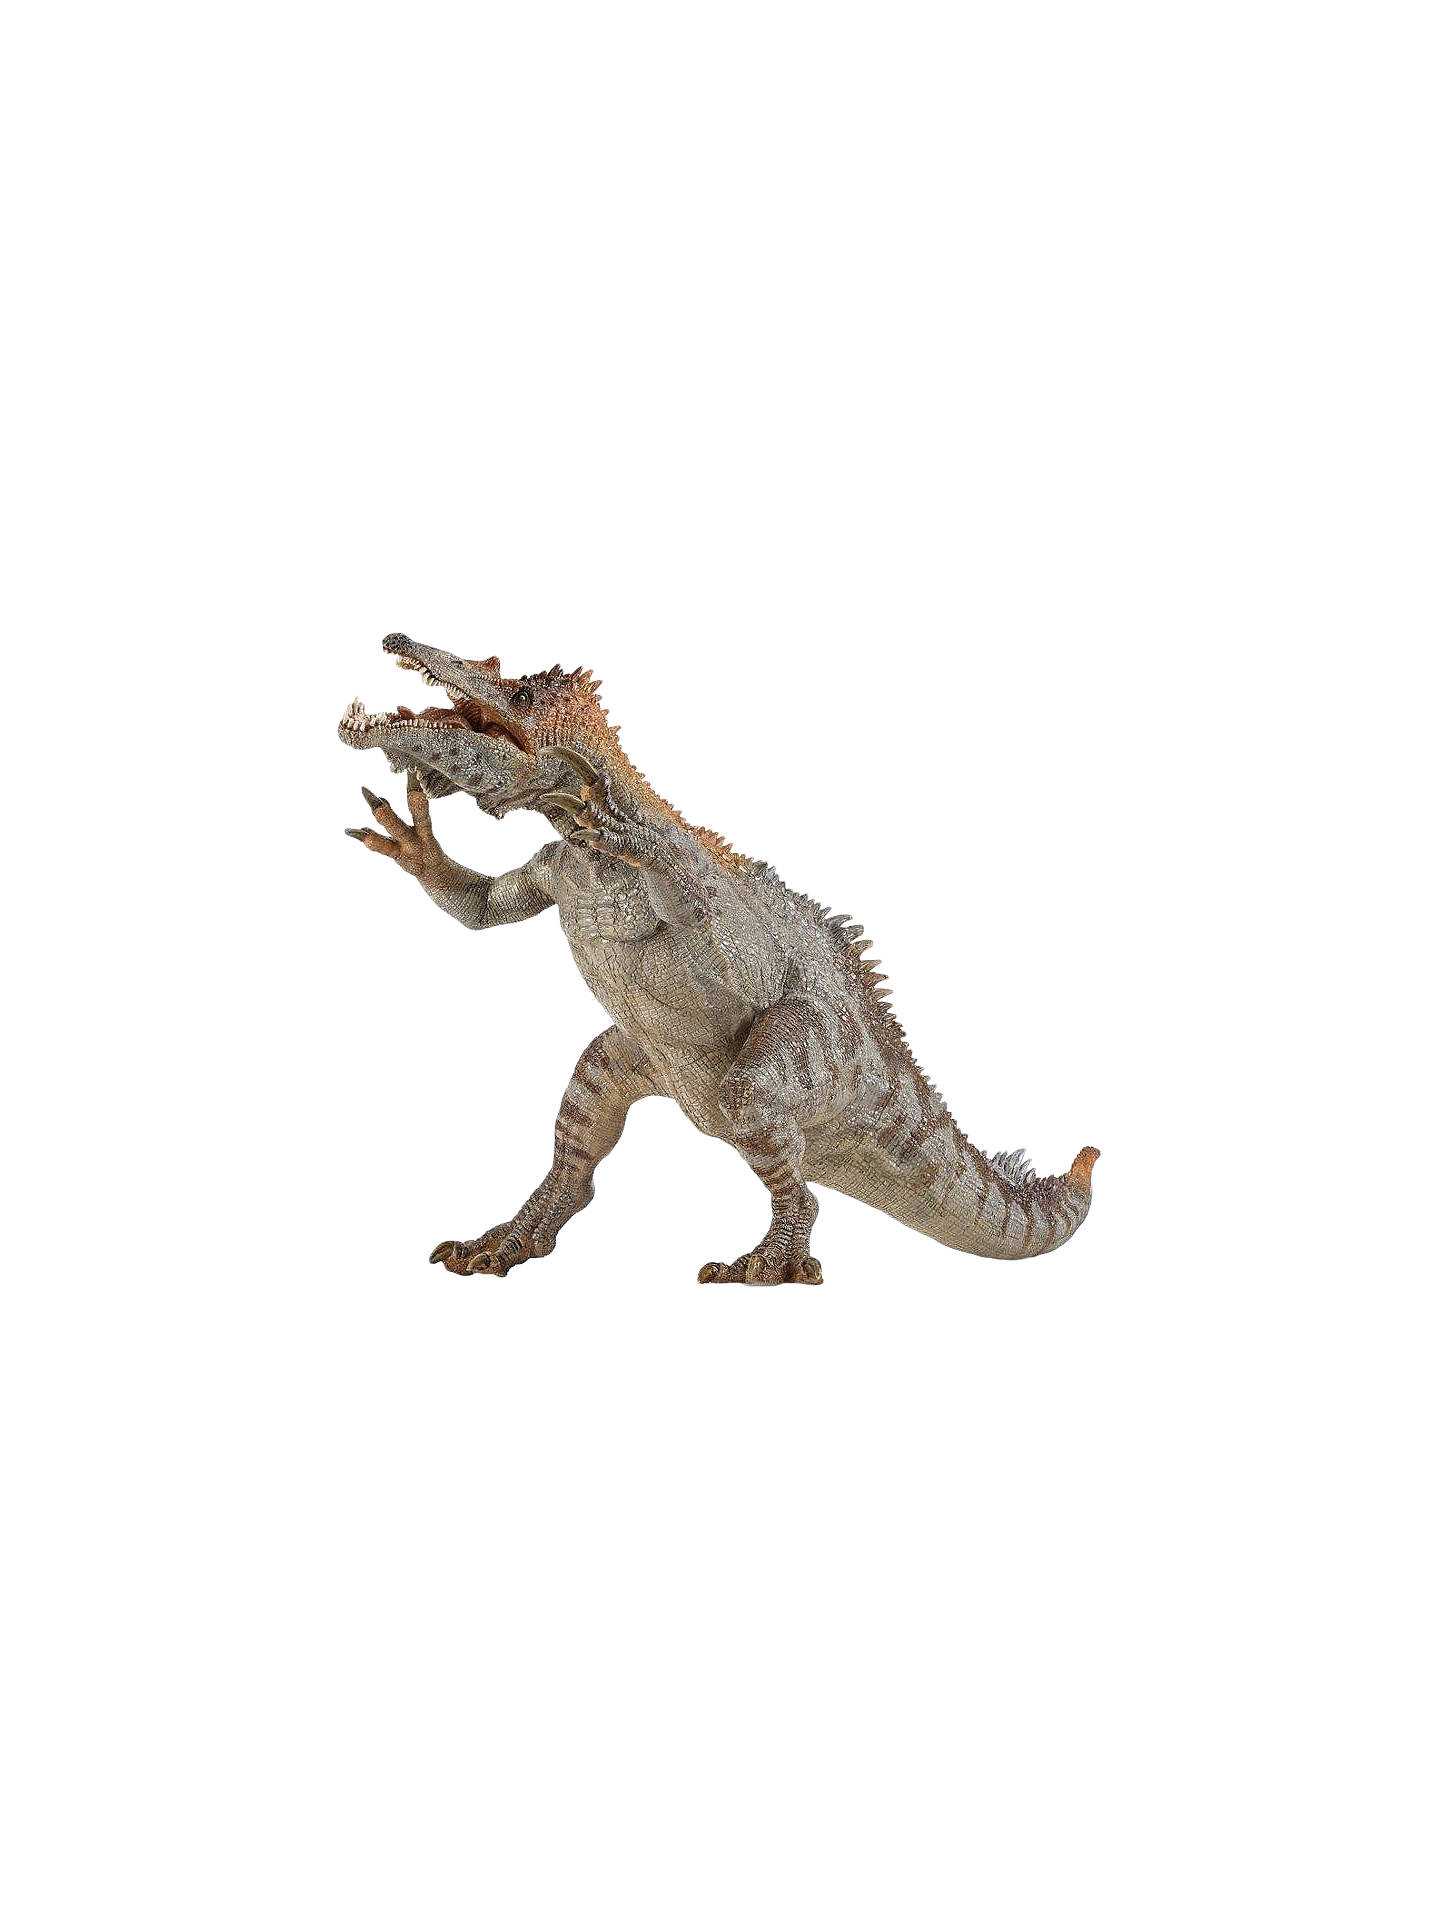 BuyPapo Figurines: Baryonyx Dinosaur Online at johnlewis.com